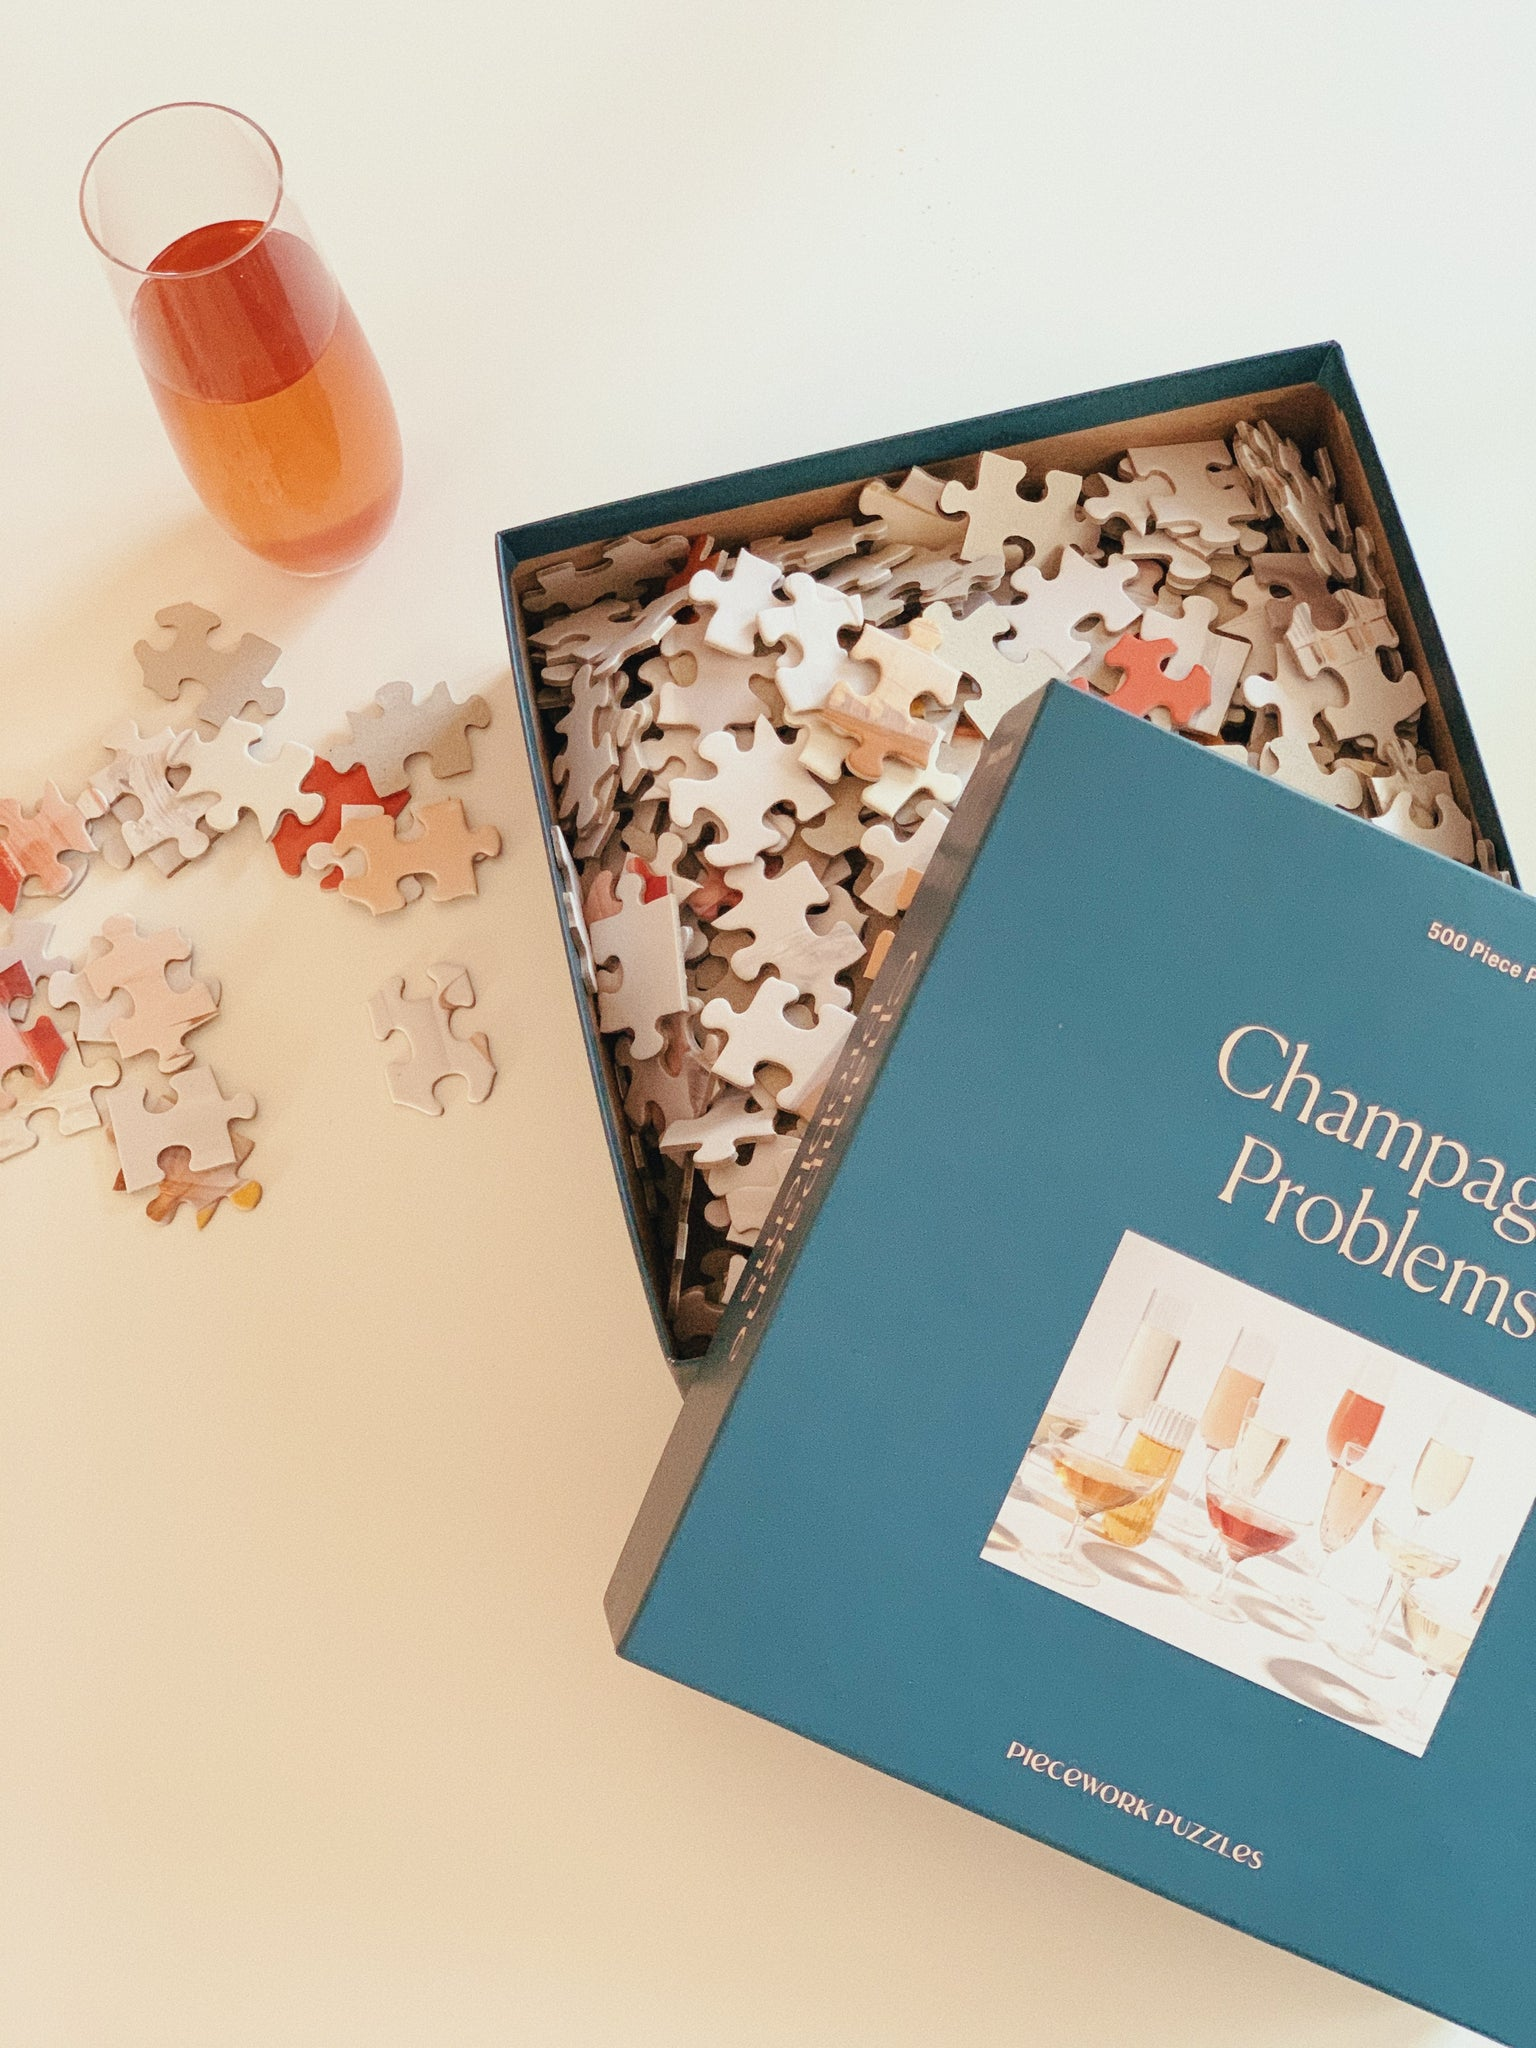 champagne problems puzzle.